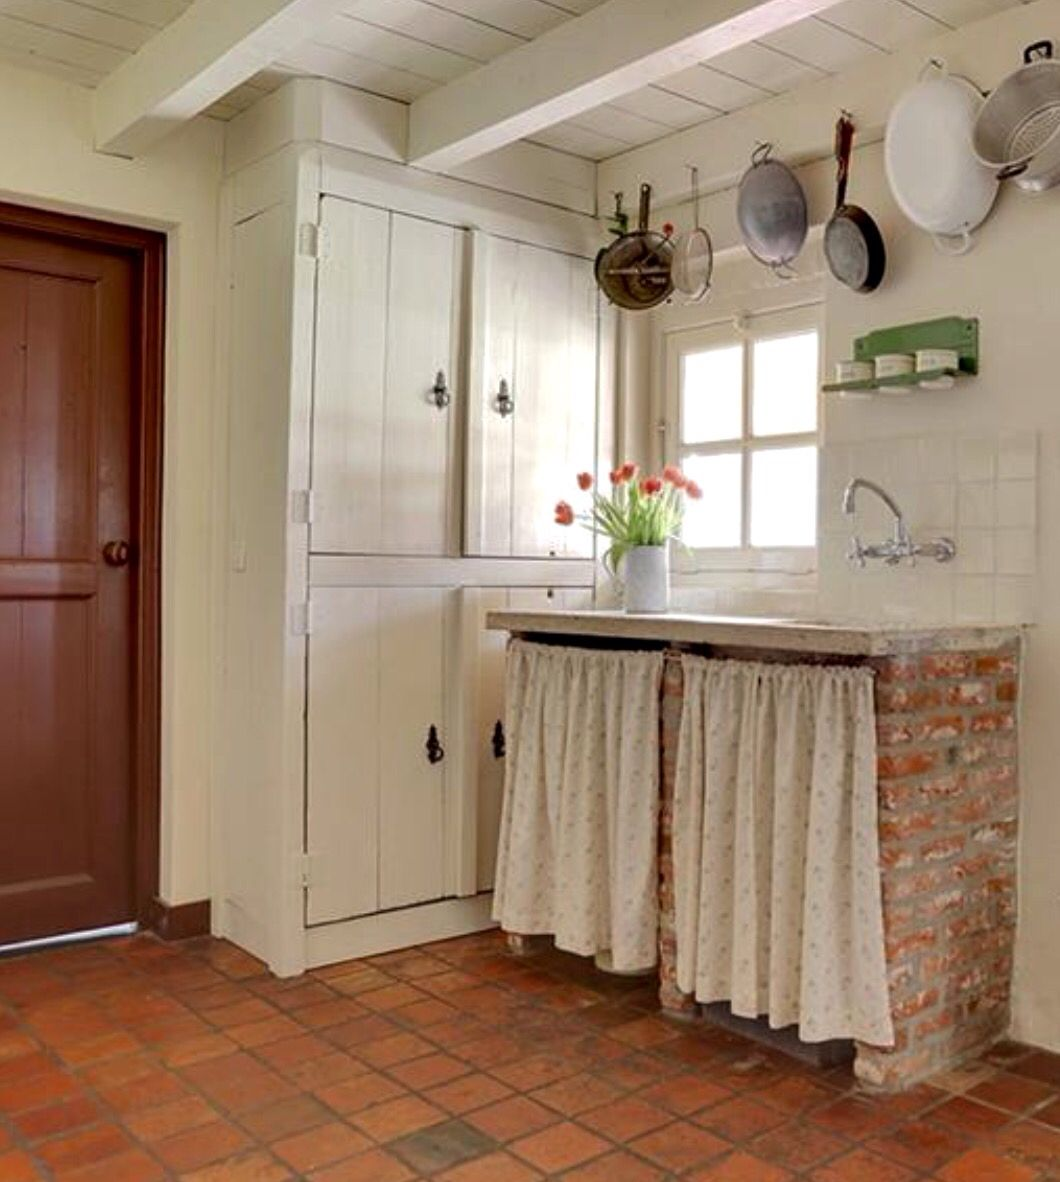 Country Cottage Kitchen Design Impressive Rustic Original Built In Cabinetry Beams Tile Floor Design Decoration